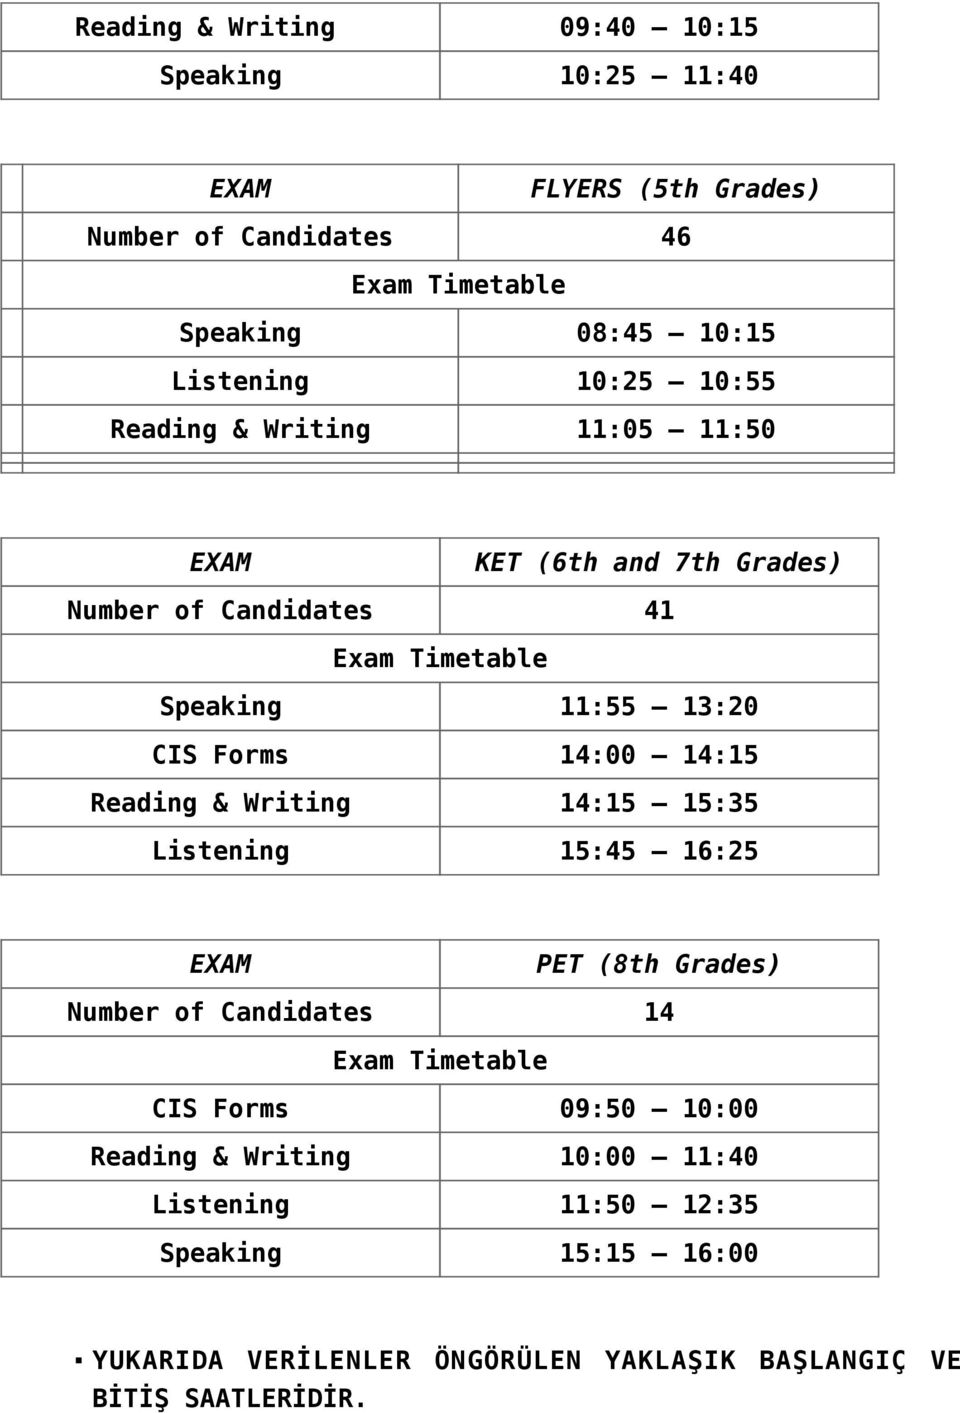 CIS Forms 14:00 14:15 Reading & Writing 14:15 15:35 Listening 15:45 16:25 EXAM PET (8th Grades) Number of Candidates 14 Exam Timetable CIS Forms